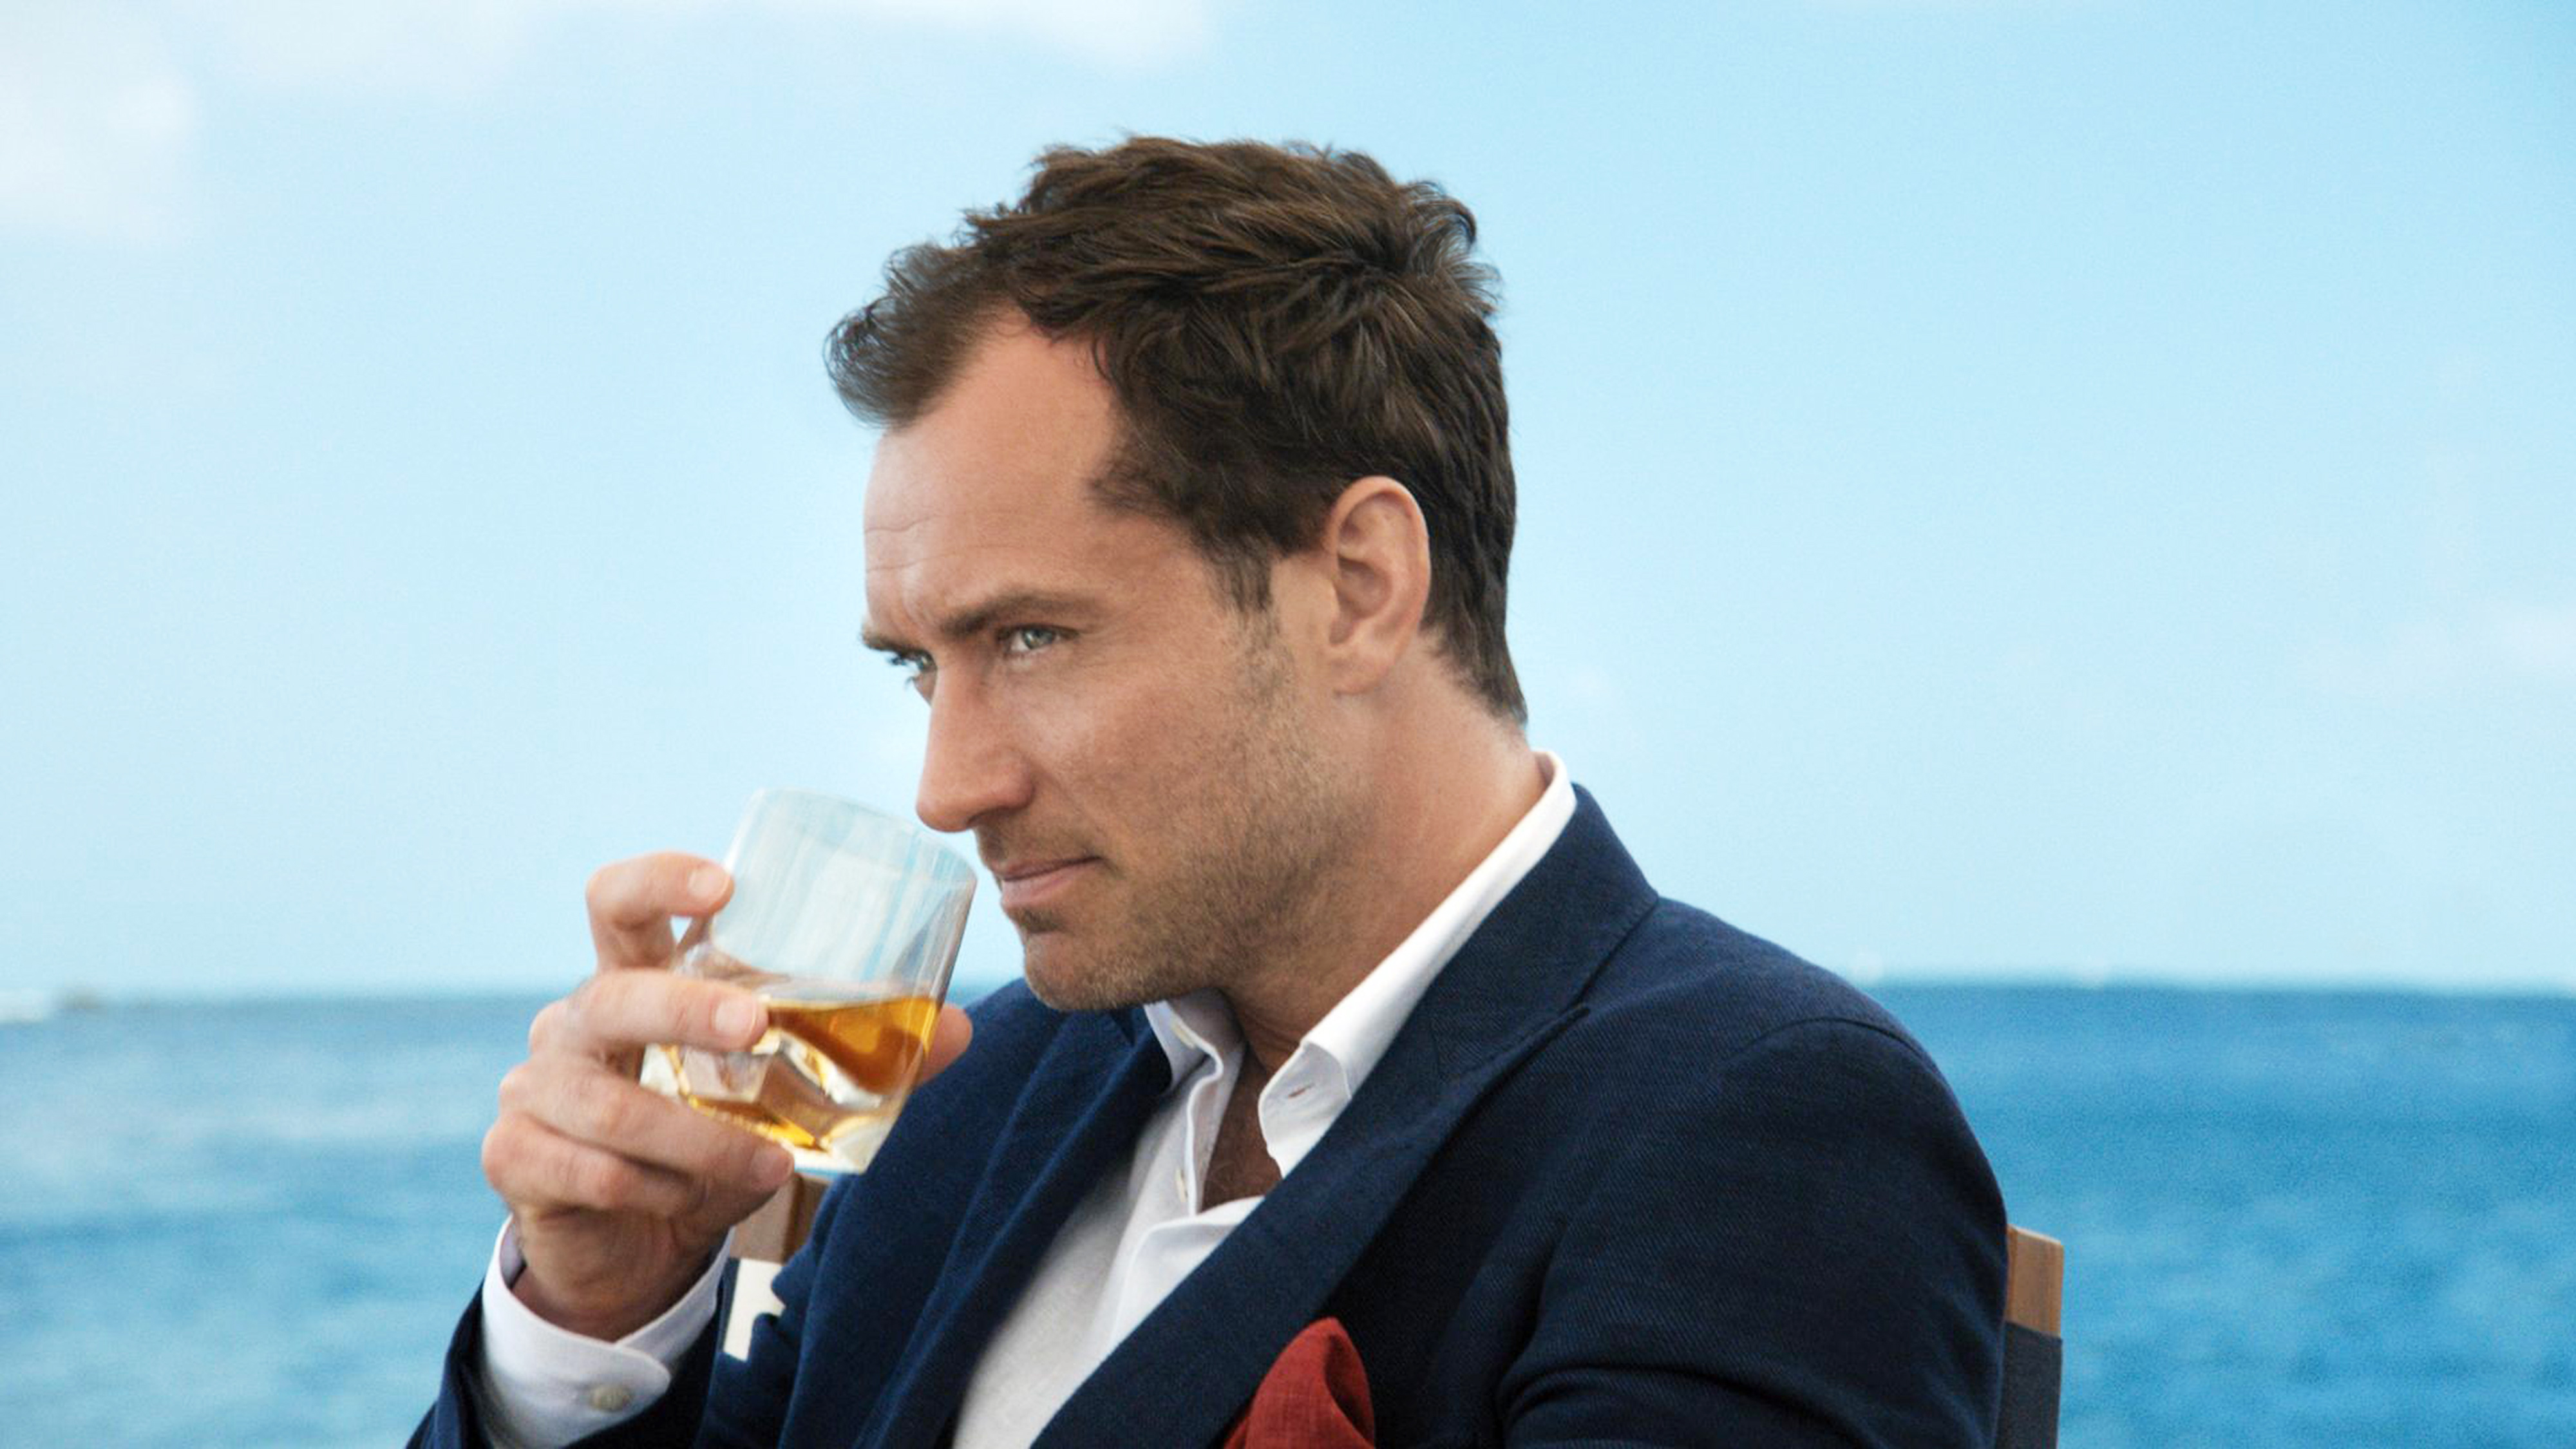 Jude Law in a Johnnie Walker Blue Label ad